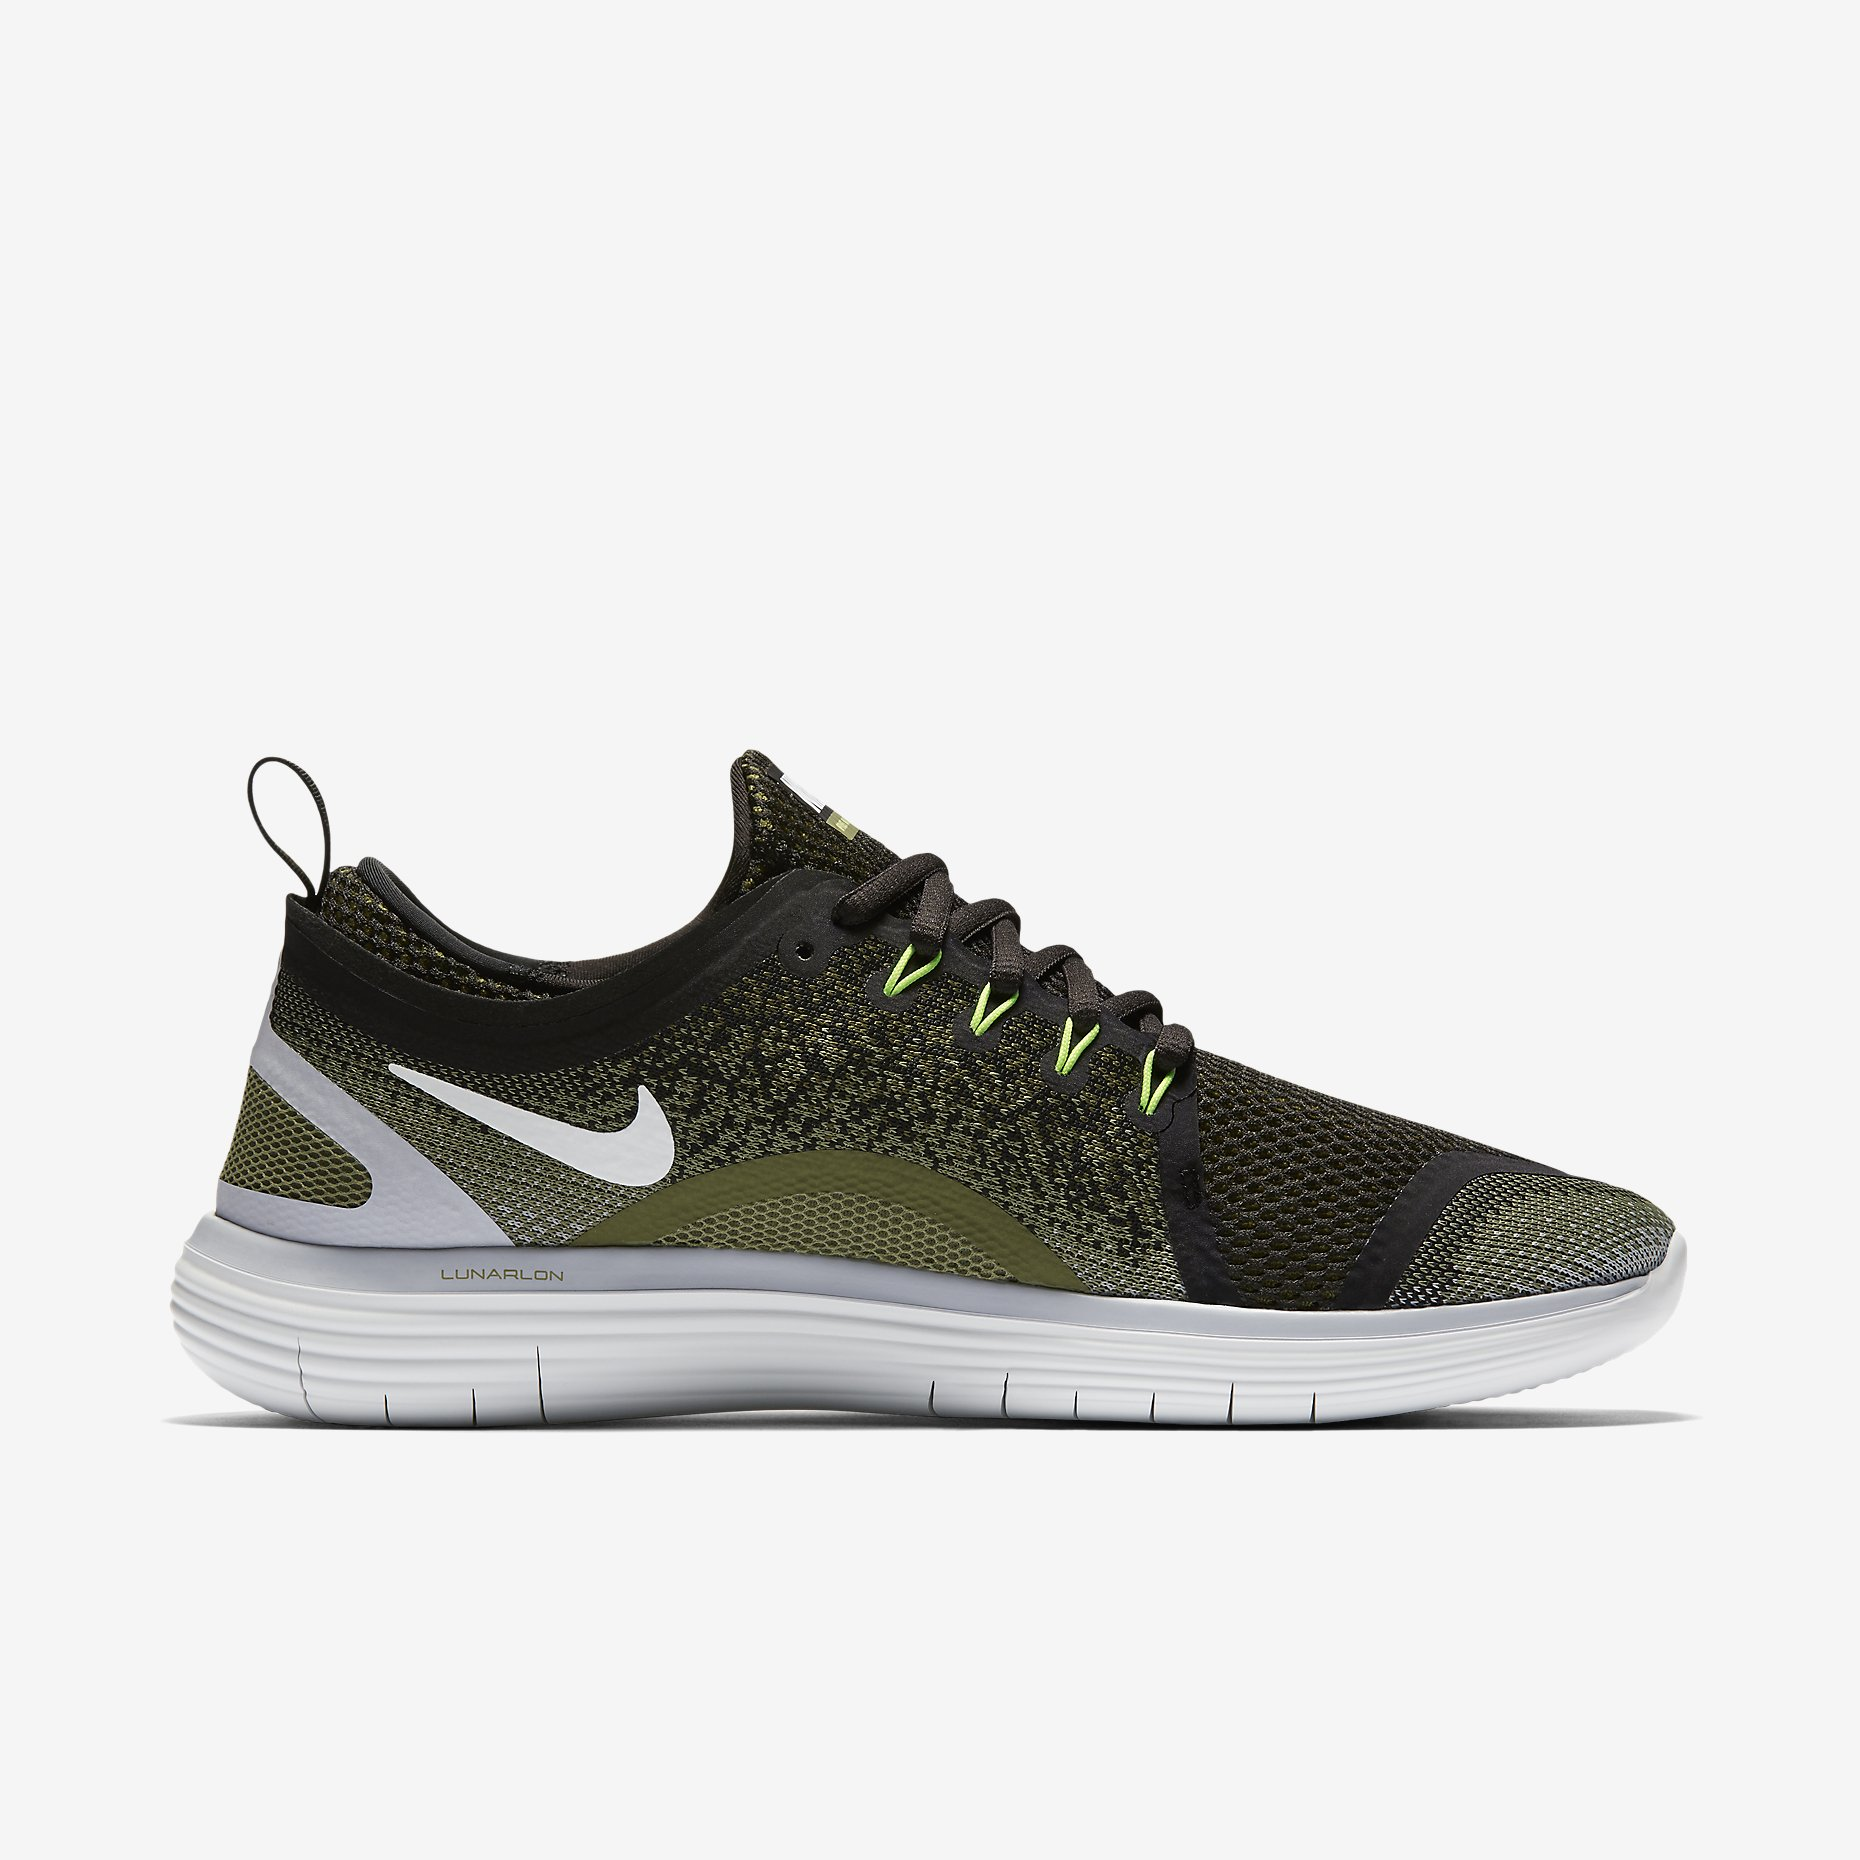 12693687a879 Nike Free RN Distance 2 Mens Running Shoes - Alton Sports